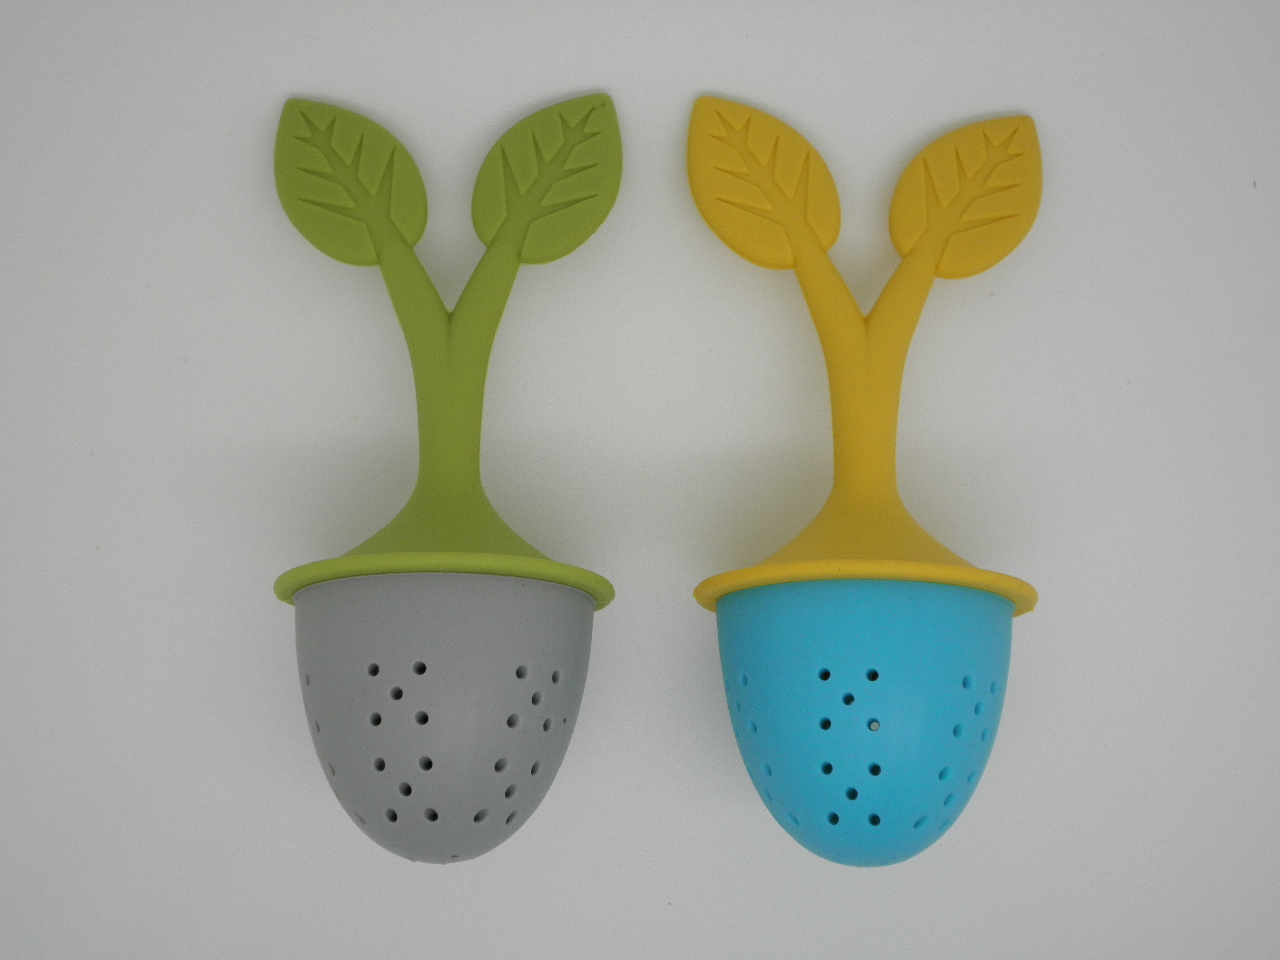 http://www.refinehksilicone.cn/data/images/product/20180417101056_914.JPG